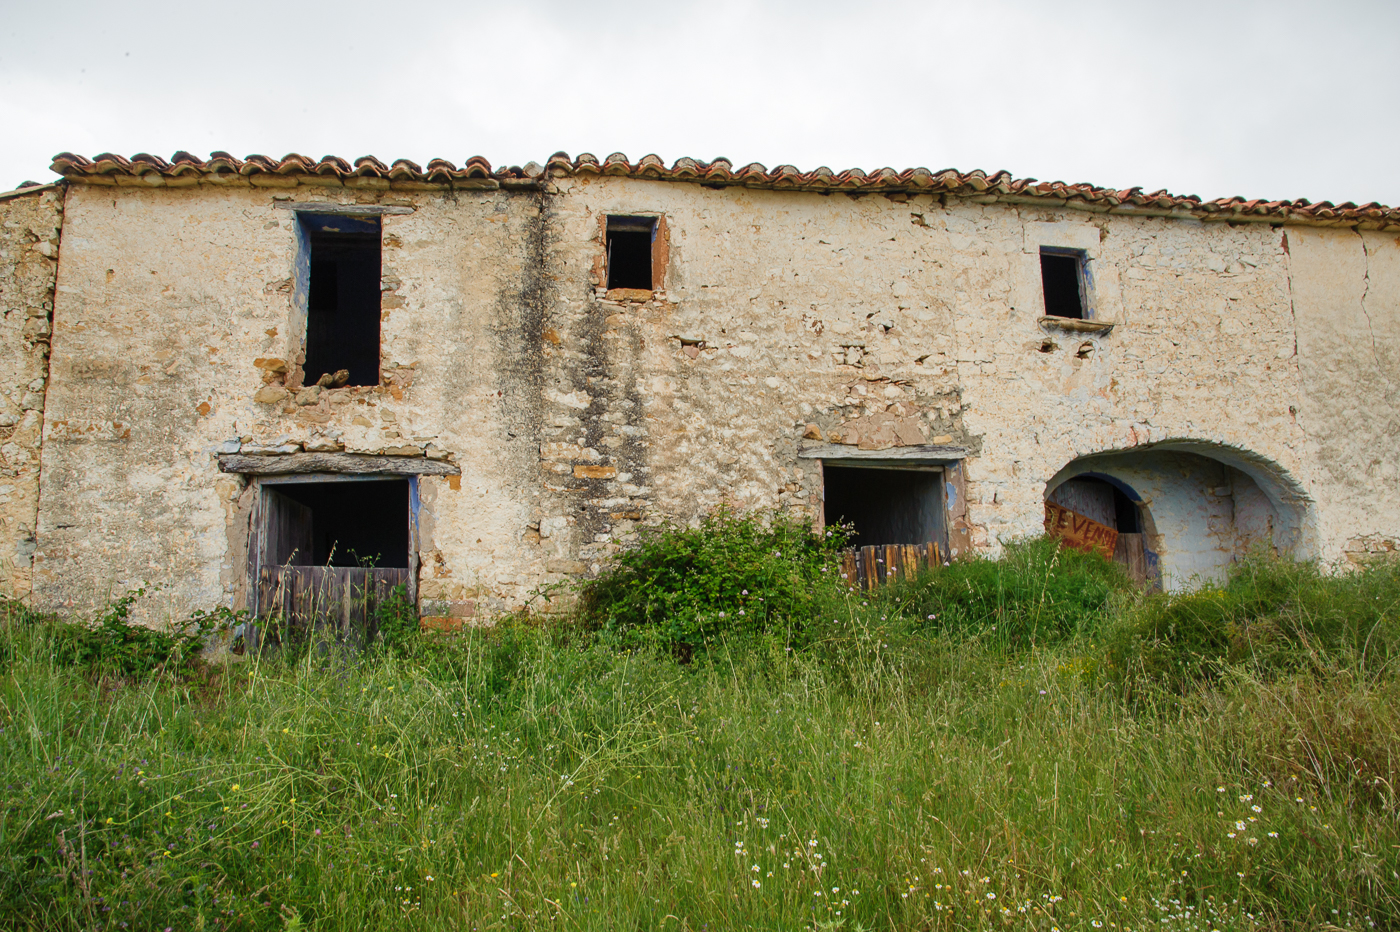 The masia was disappearing under the assault of nature